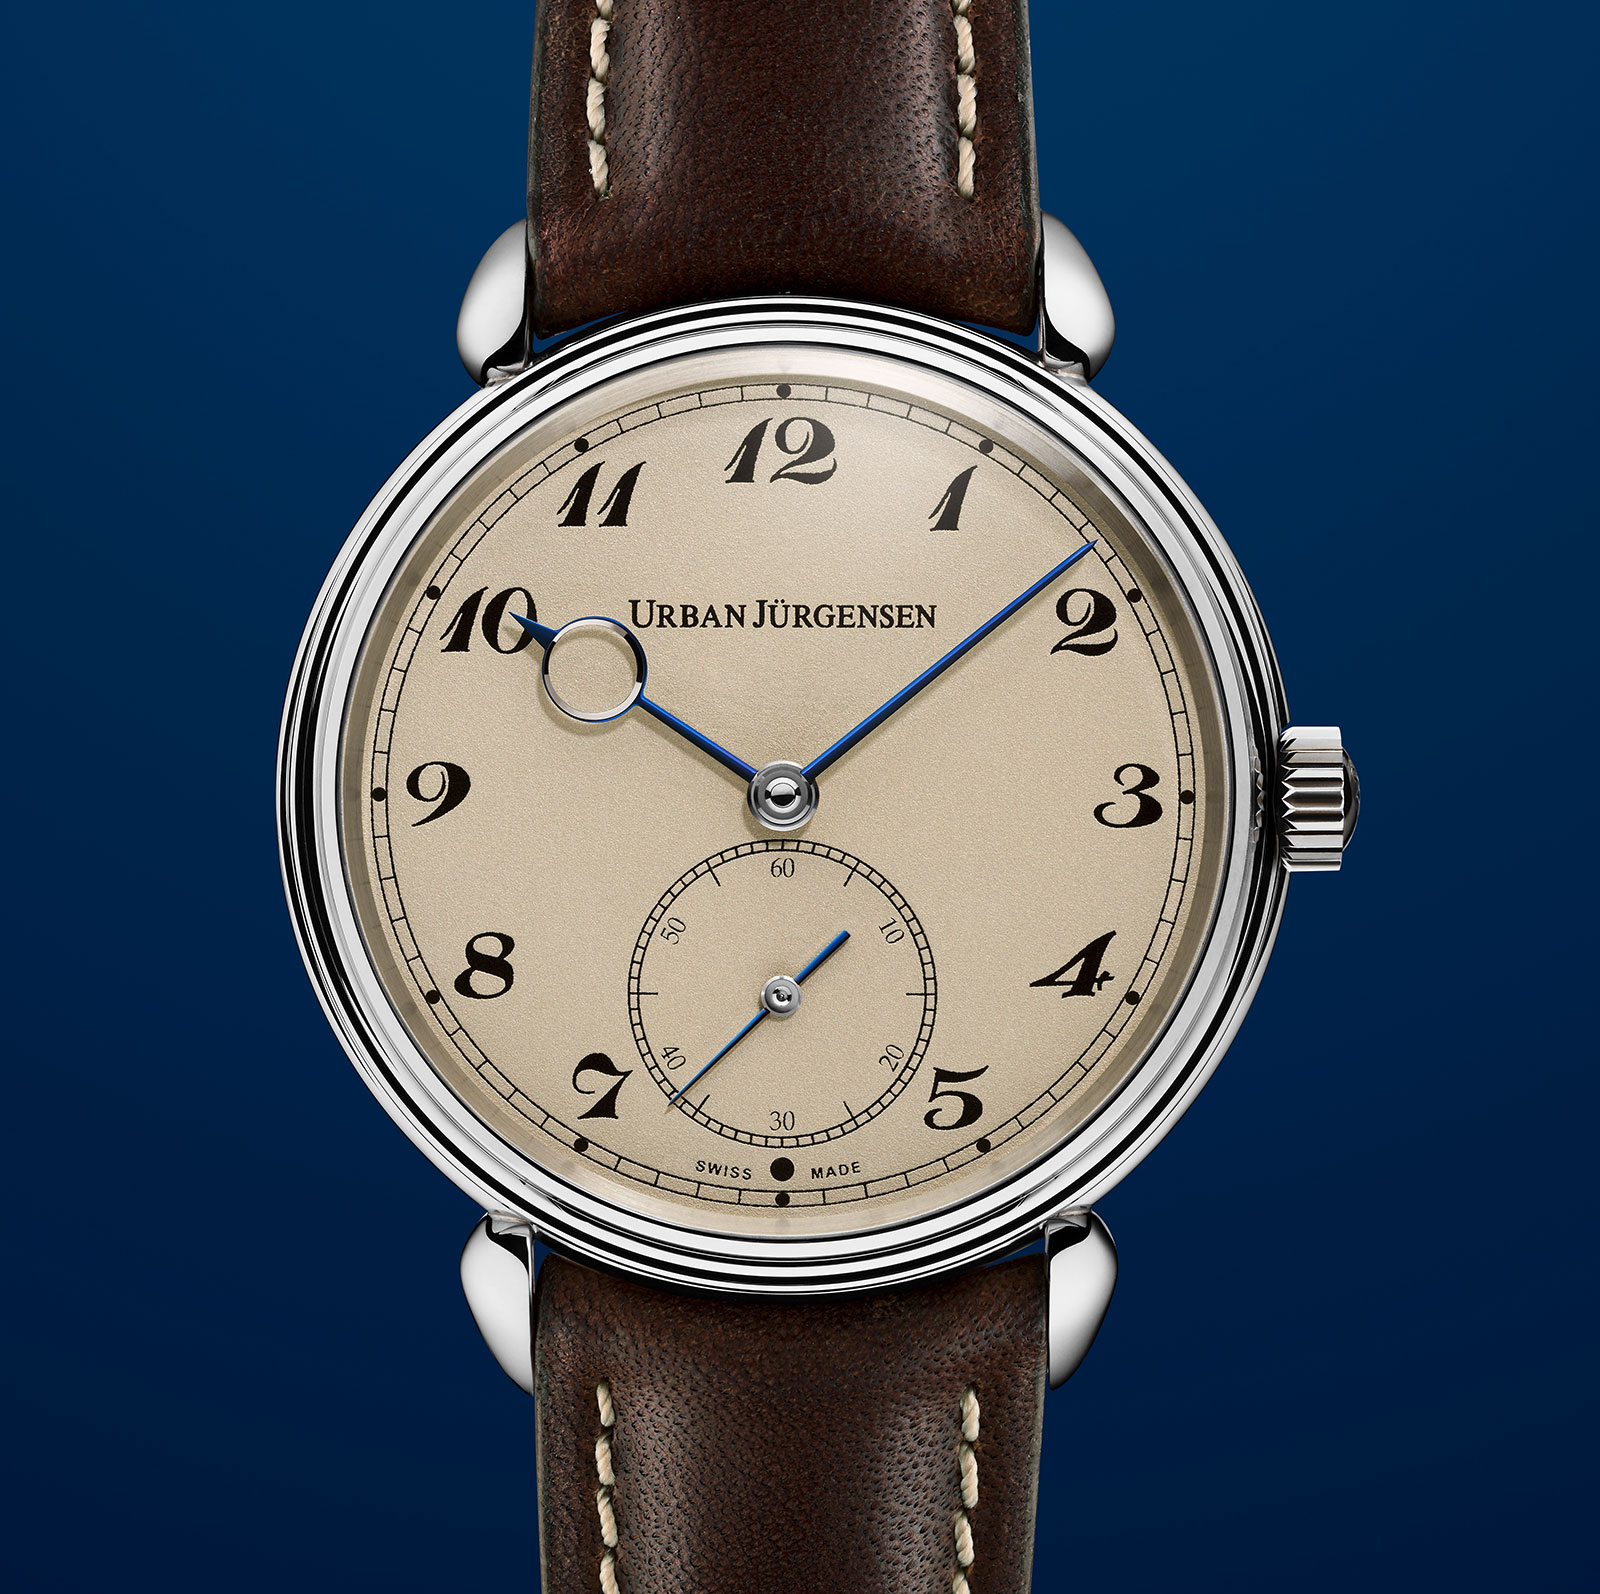 Urban Jurgensen watches 2018